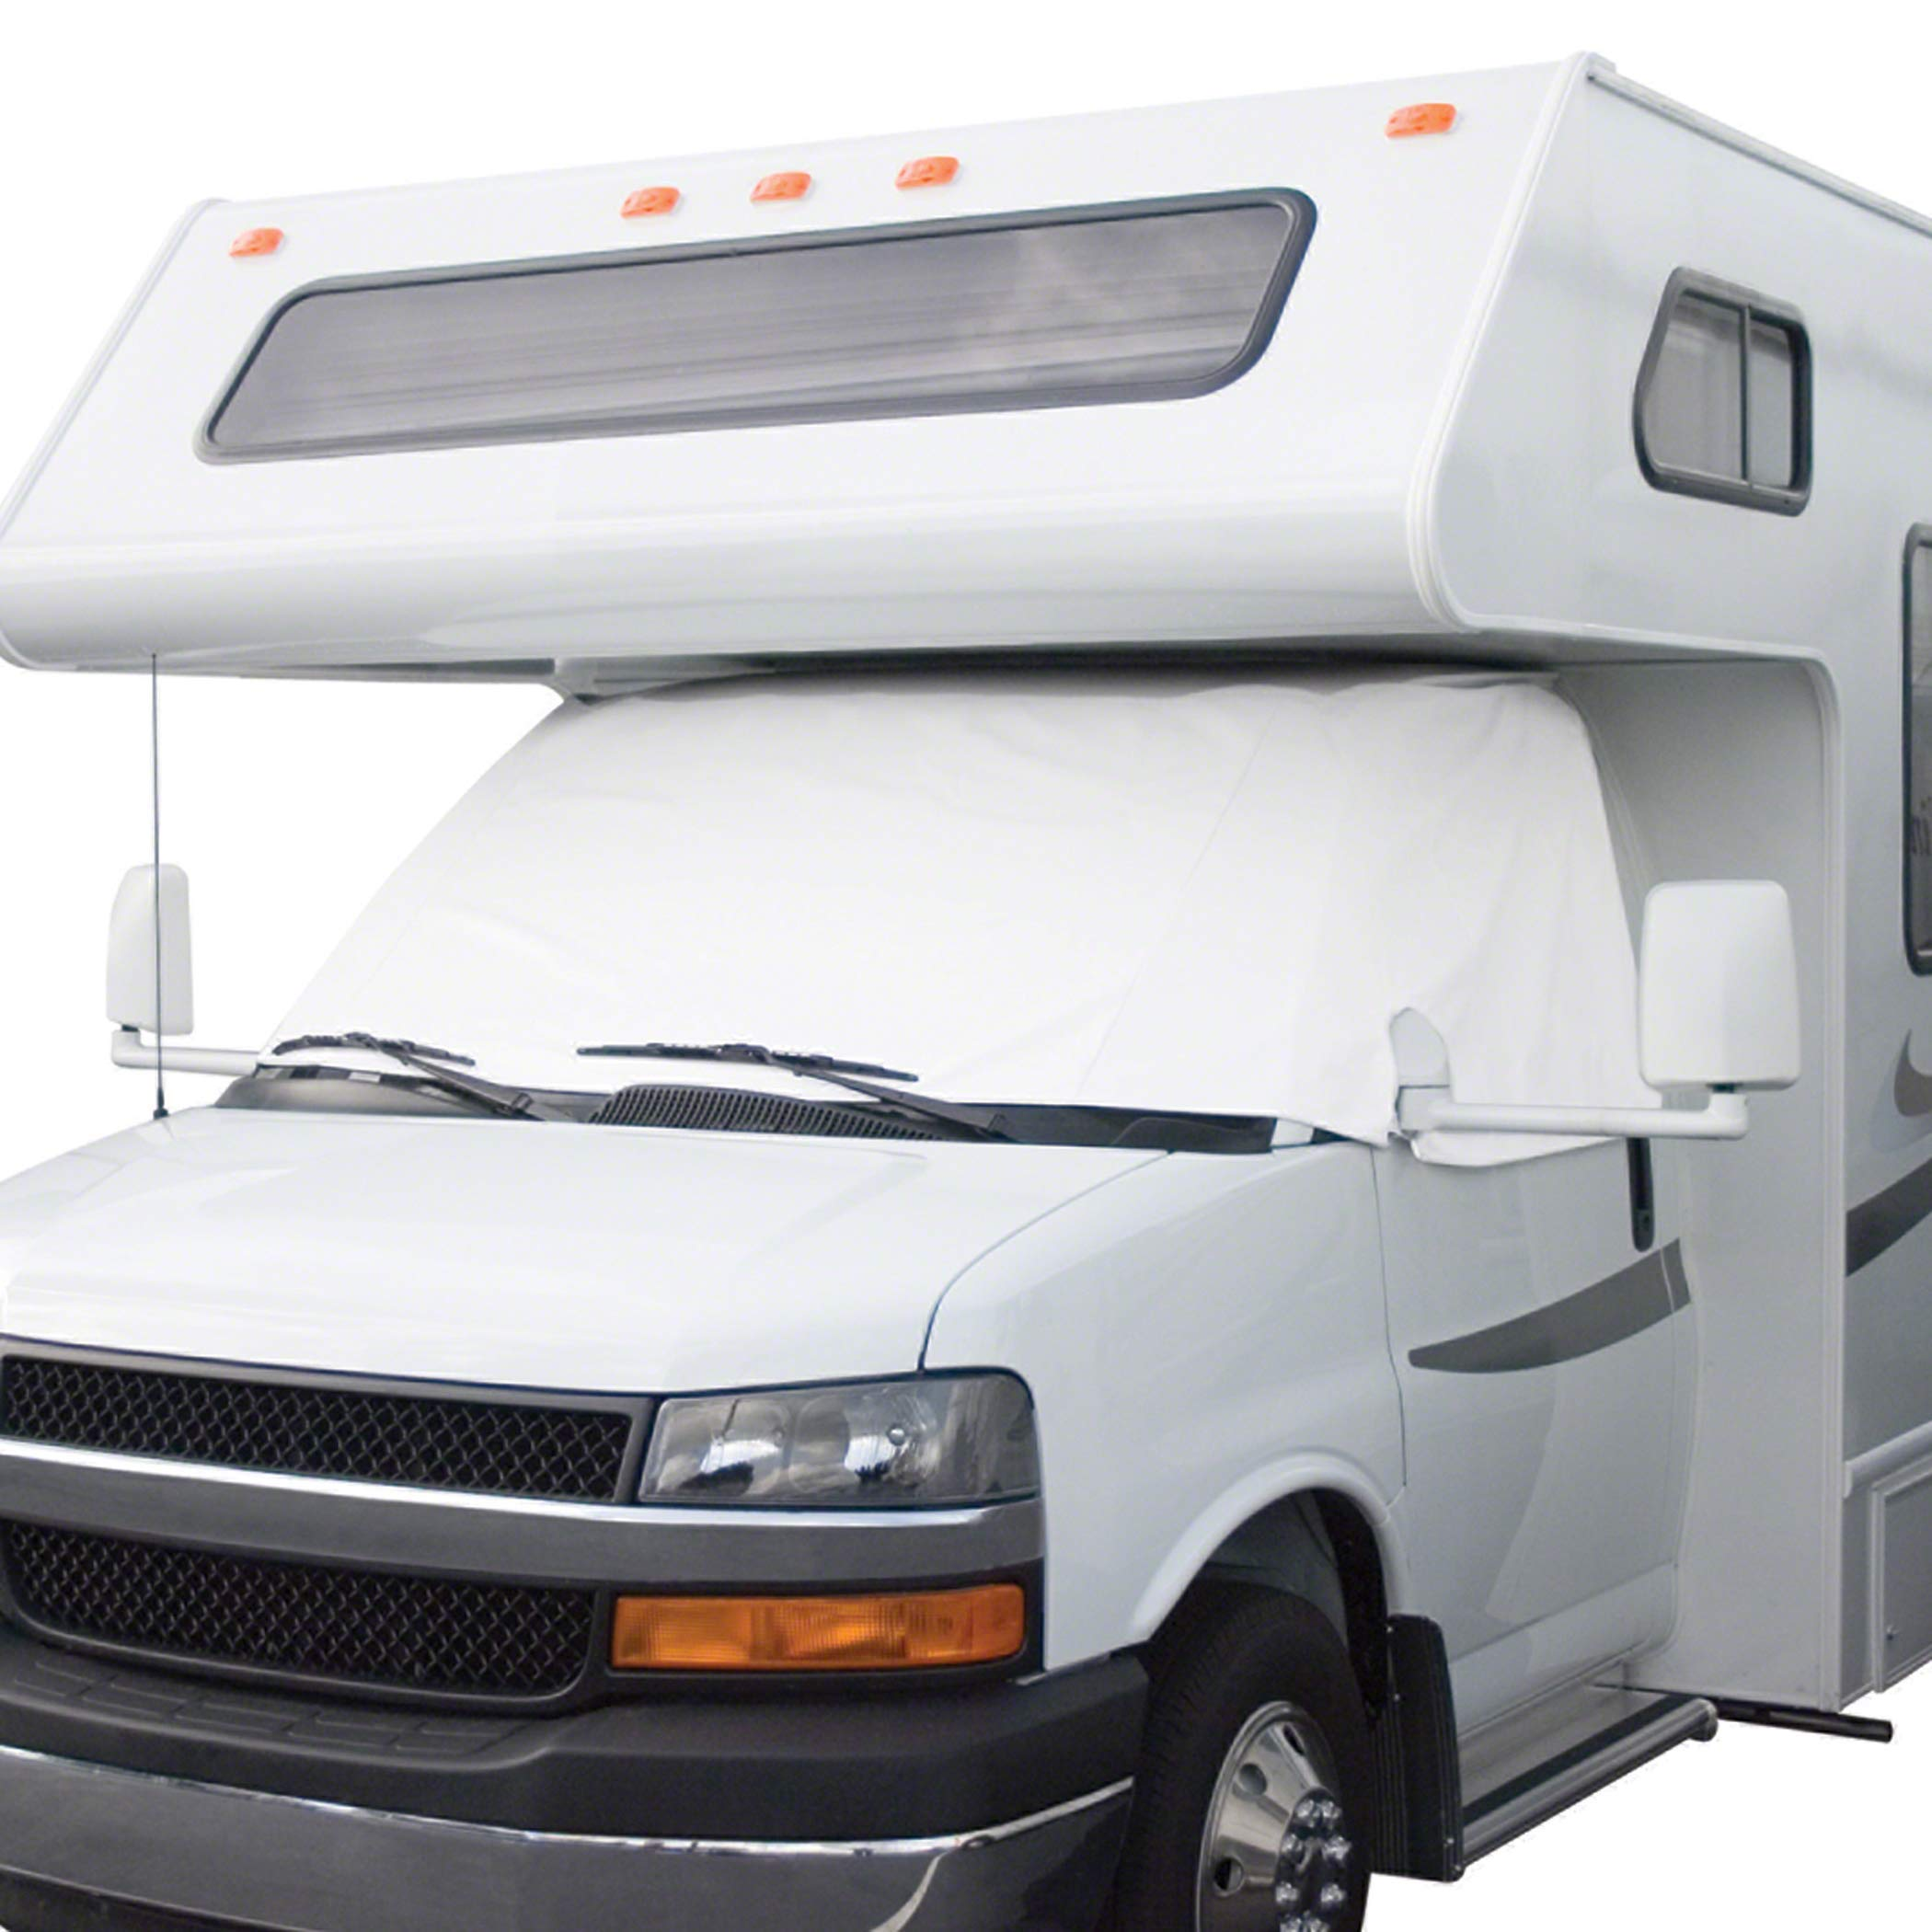 Classic Accessories 80-RV RV Windshield Cover Models: Model 6, Color: Snow White (Renewed) by Classic Accessories